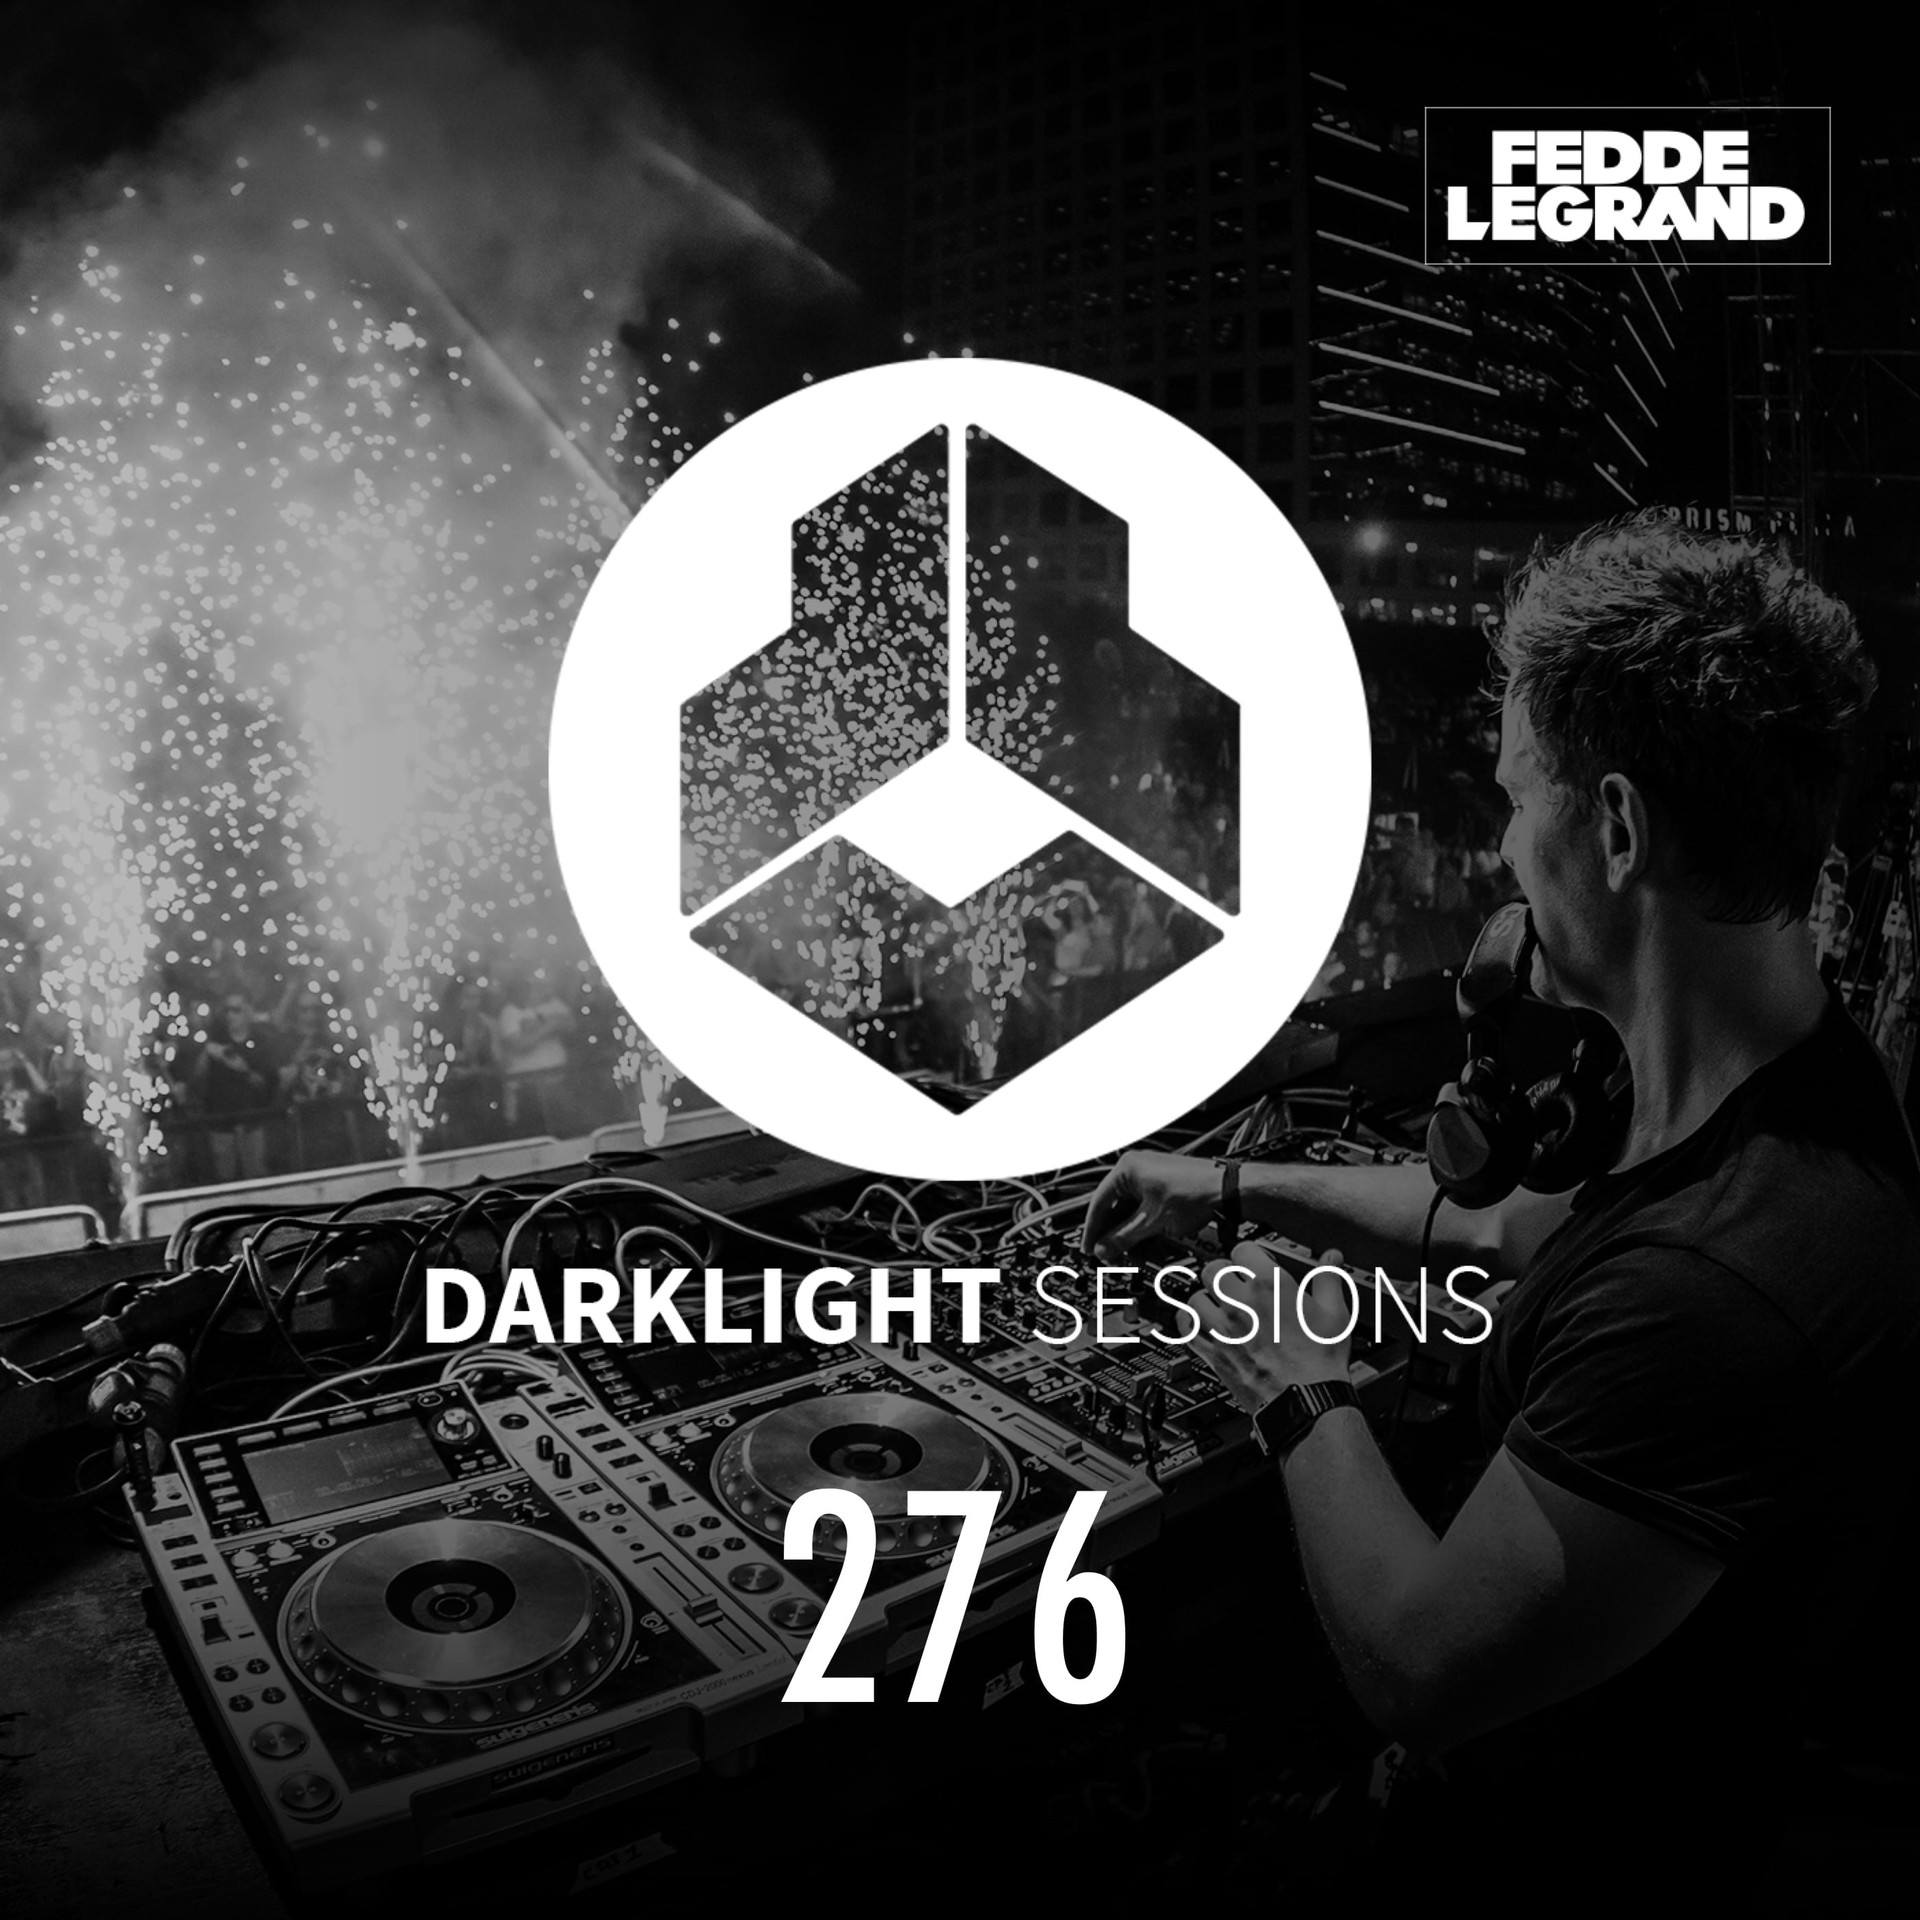 Darklight Sessions 276